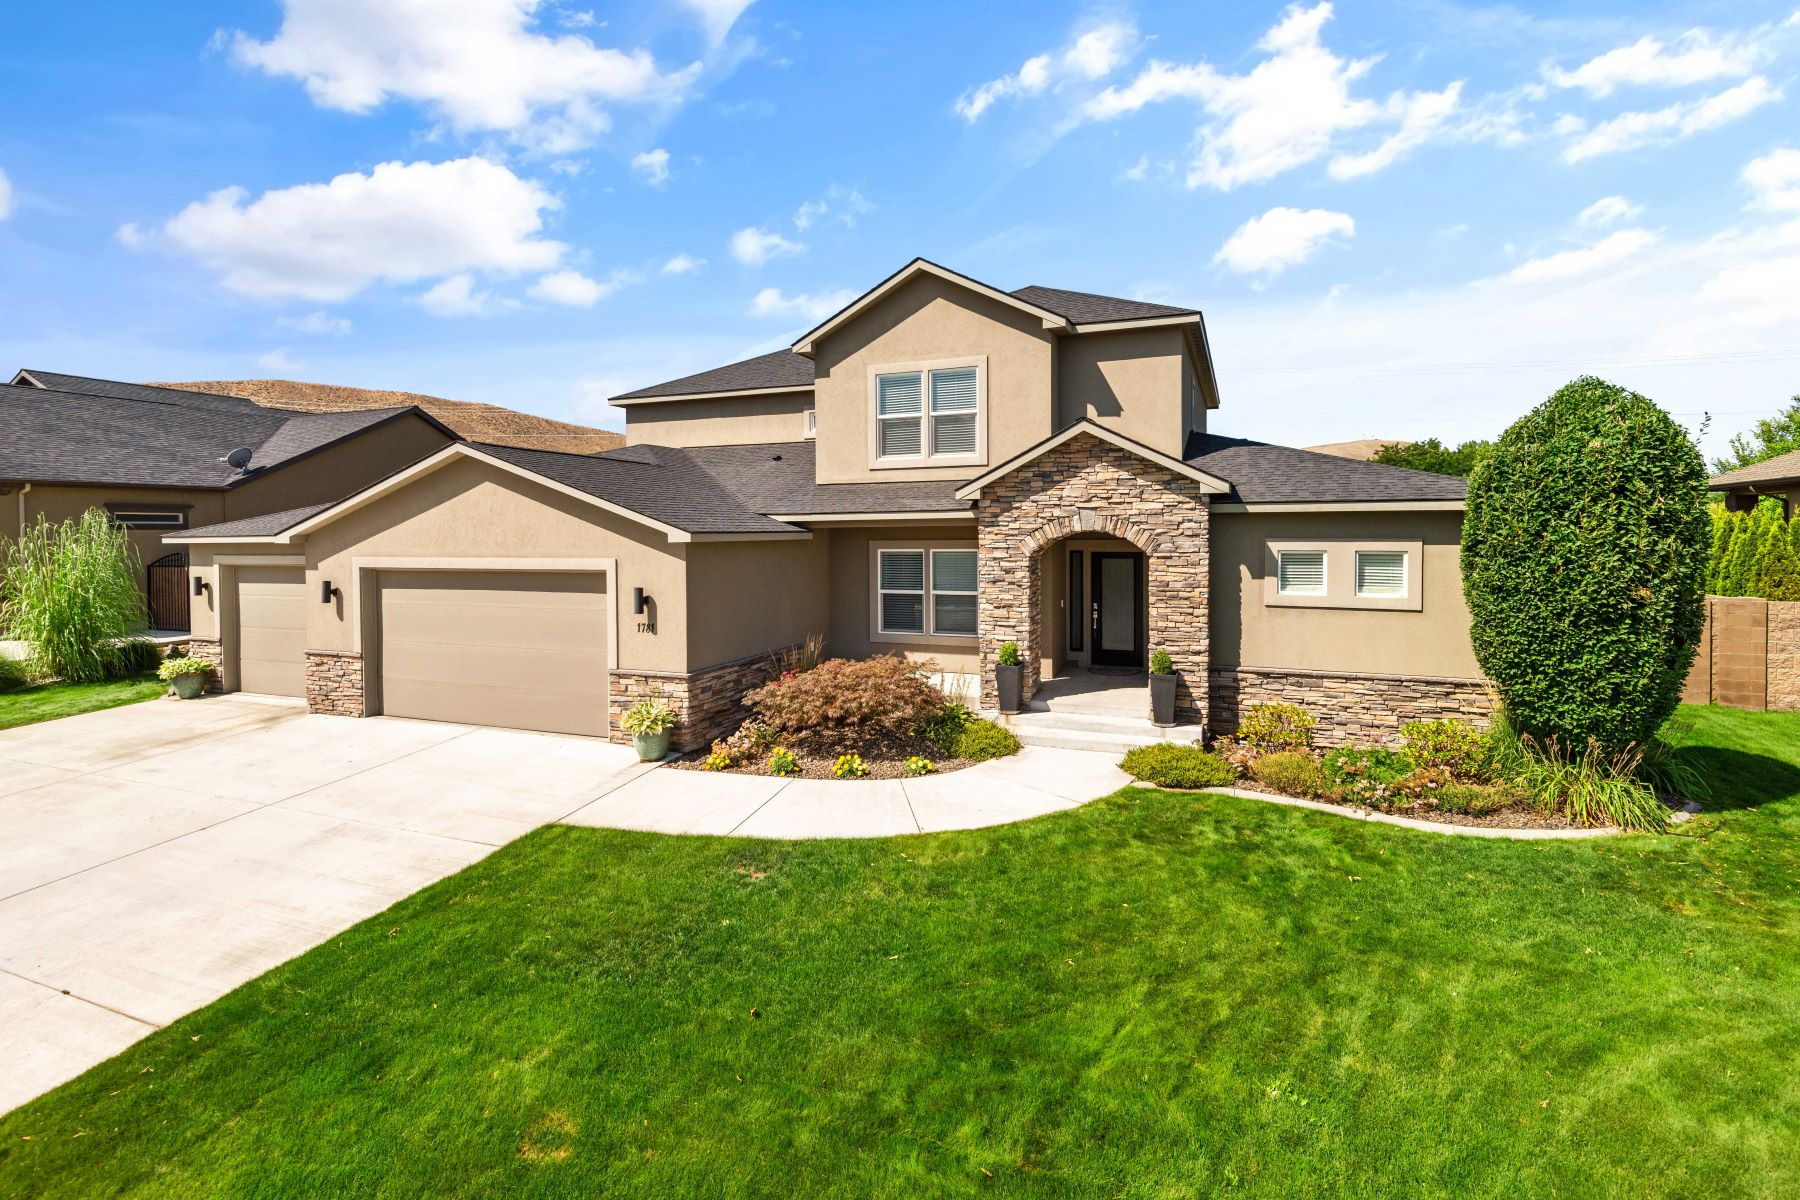 Single Family Homes for Sale at Exclusive Silver Meadows 1781 Silver Court Richland, Washington 99352 United States